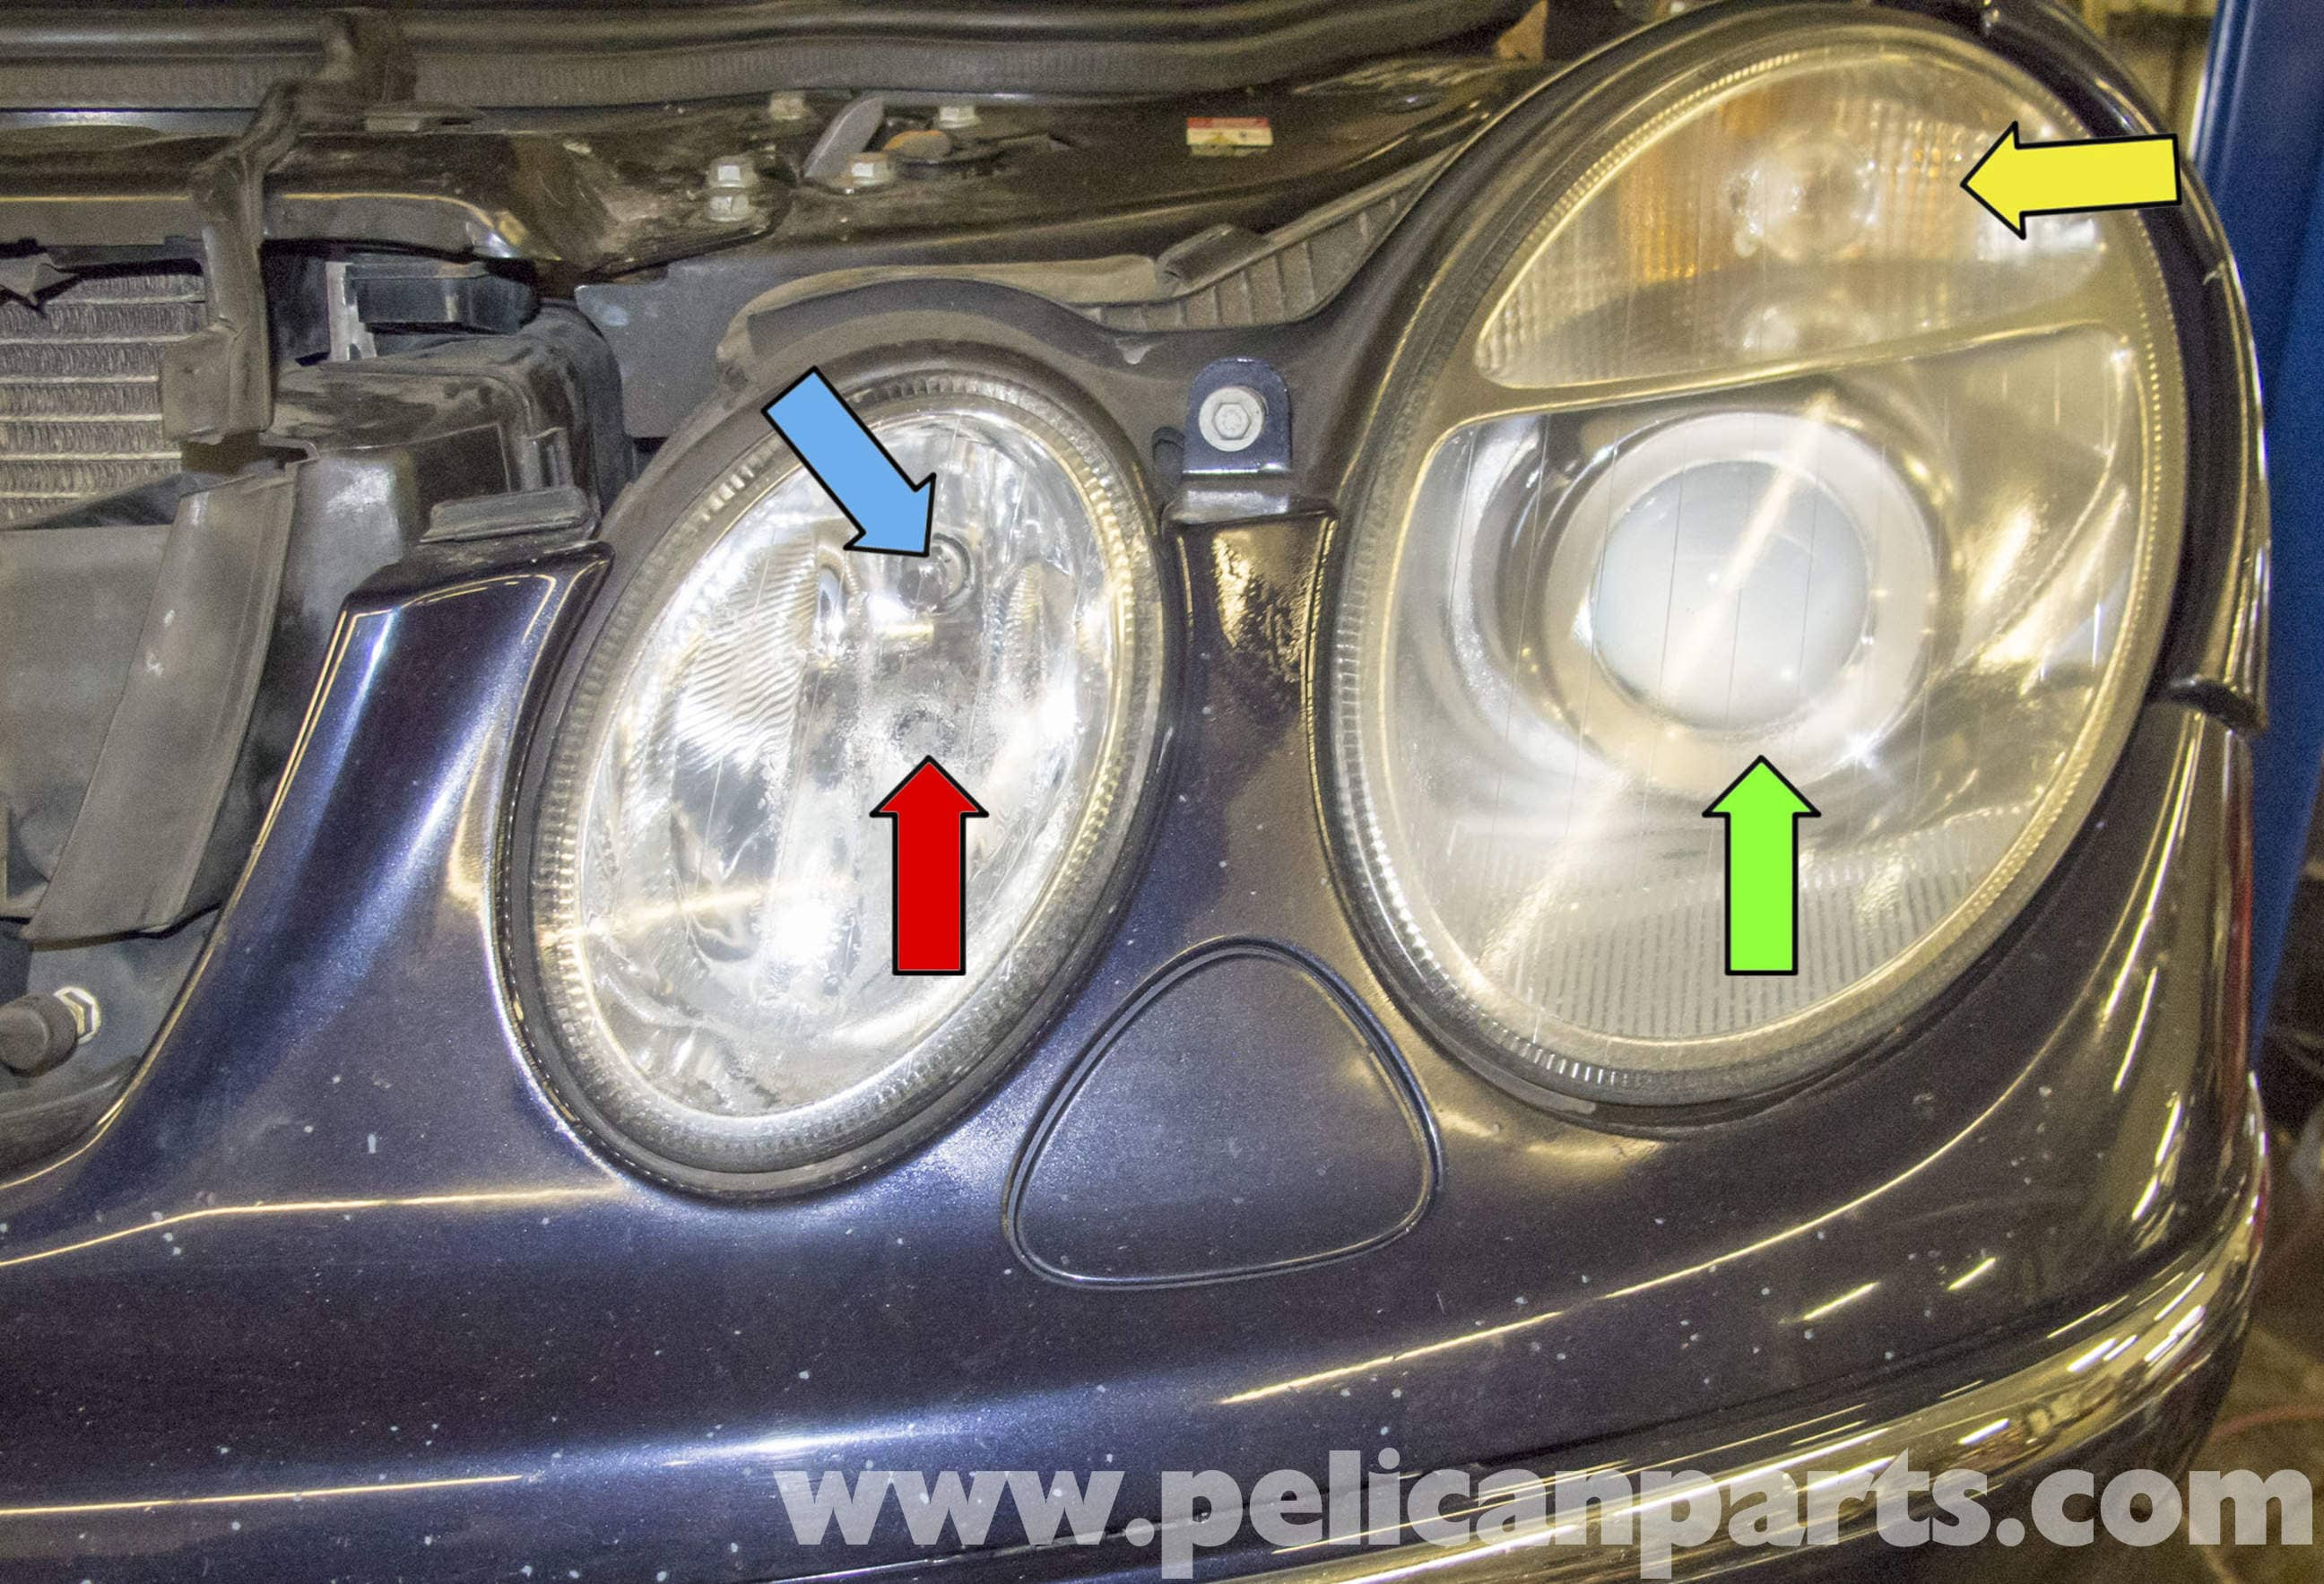 mercedes-benz w211 headlight replacement (2003-2009) e320, e500